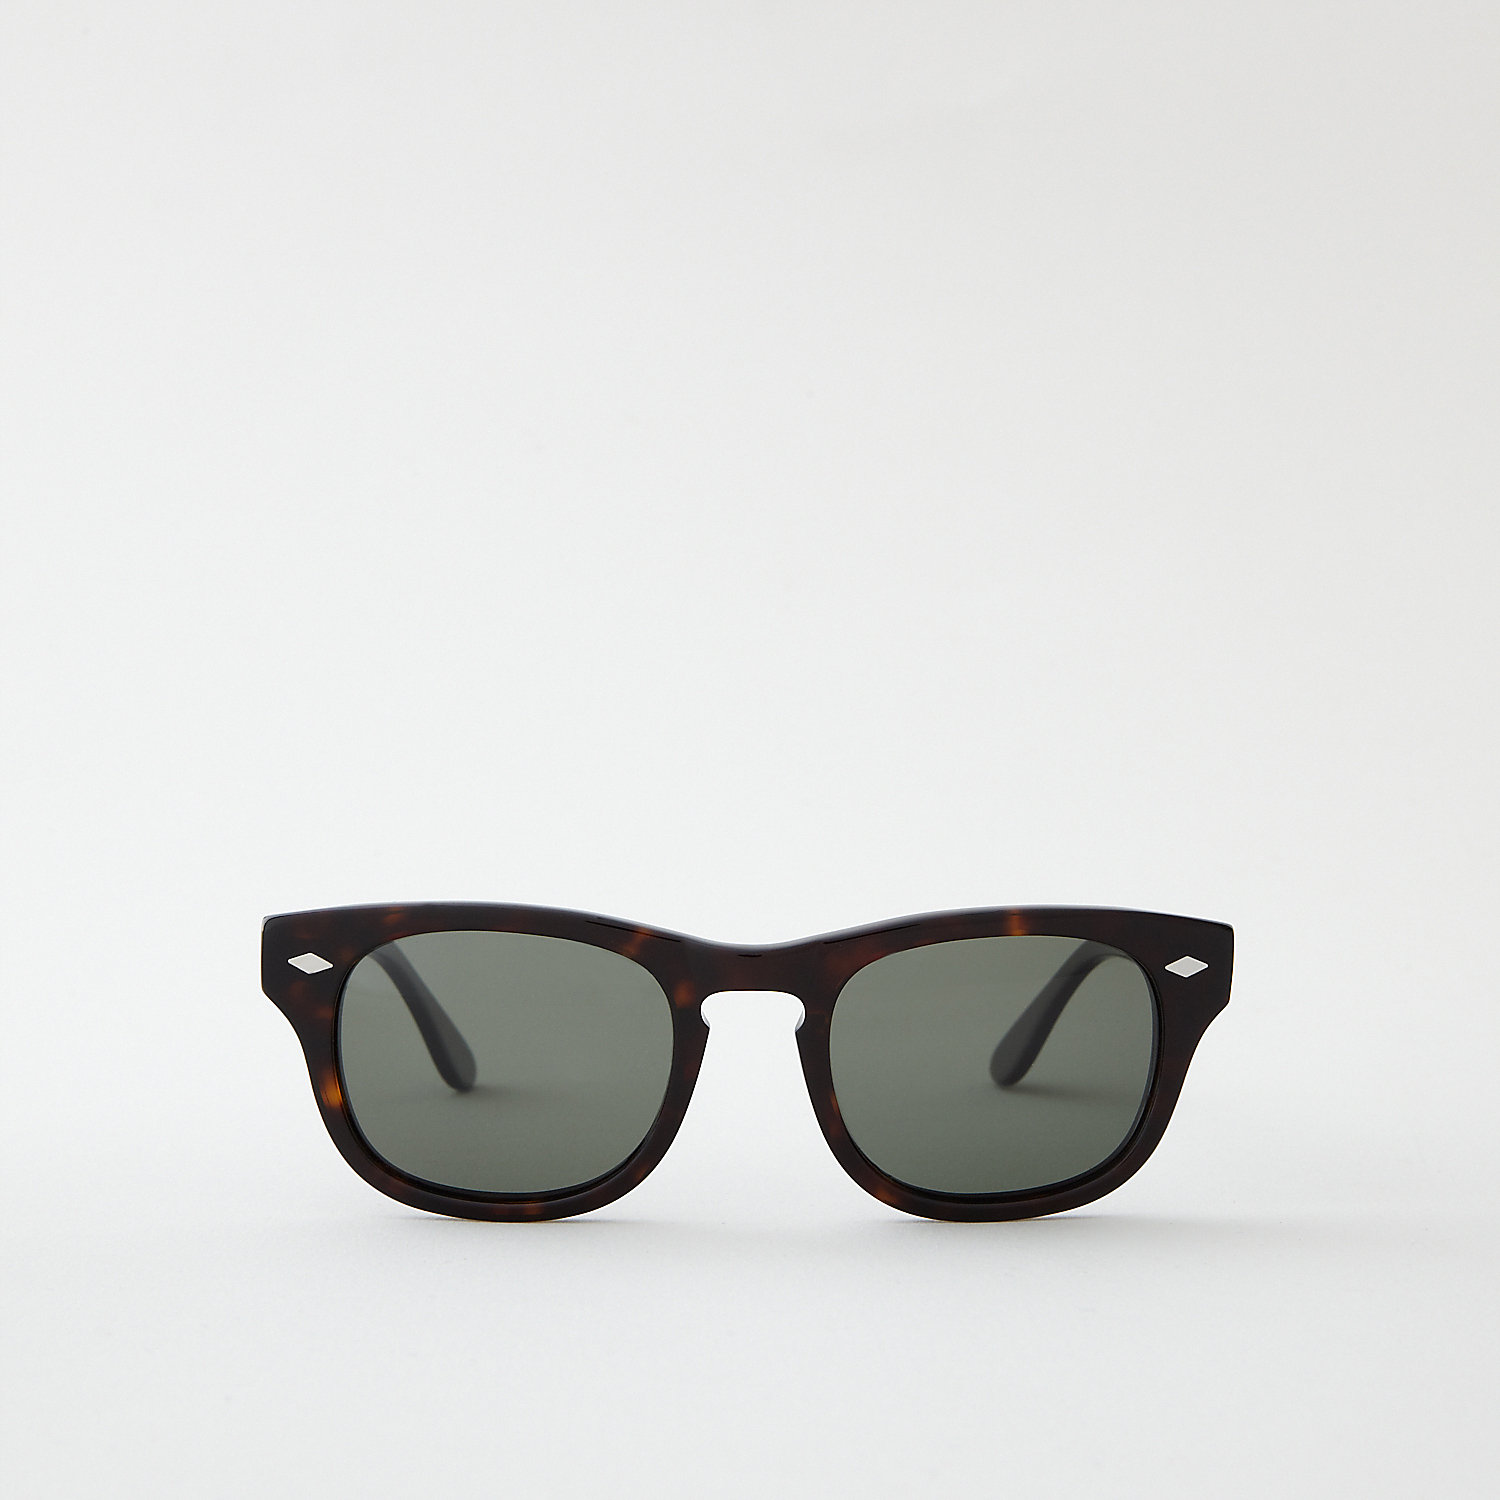 THORPE SUNGLASSES - DARK TORTOISE